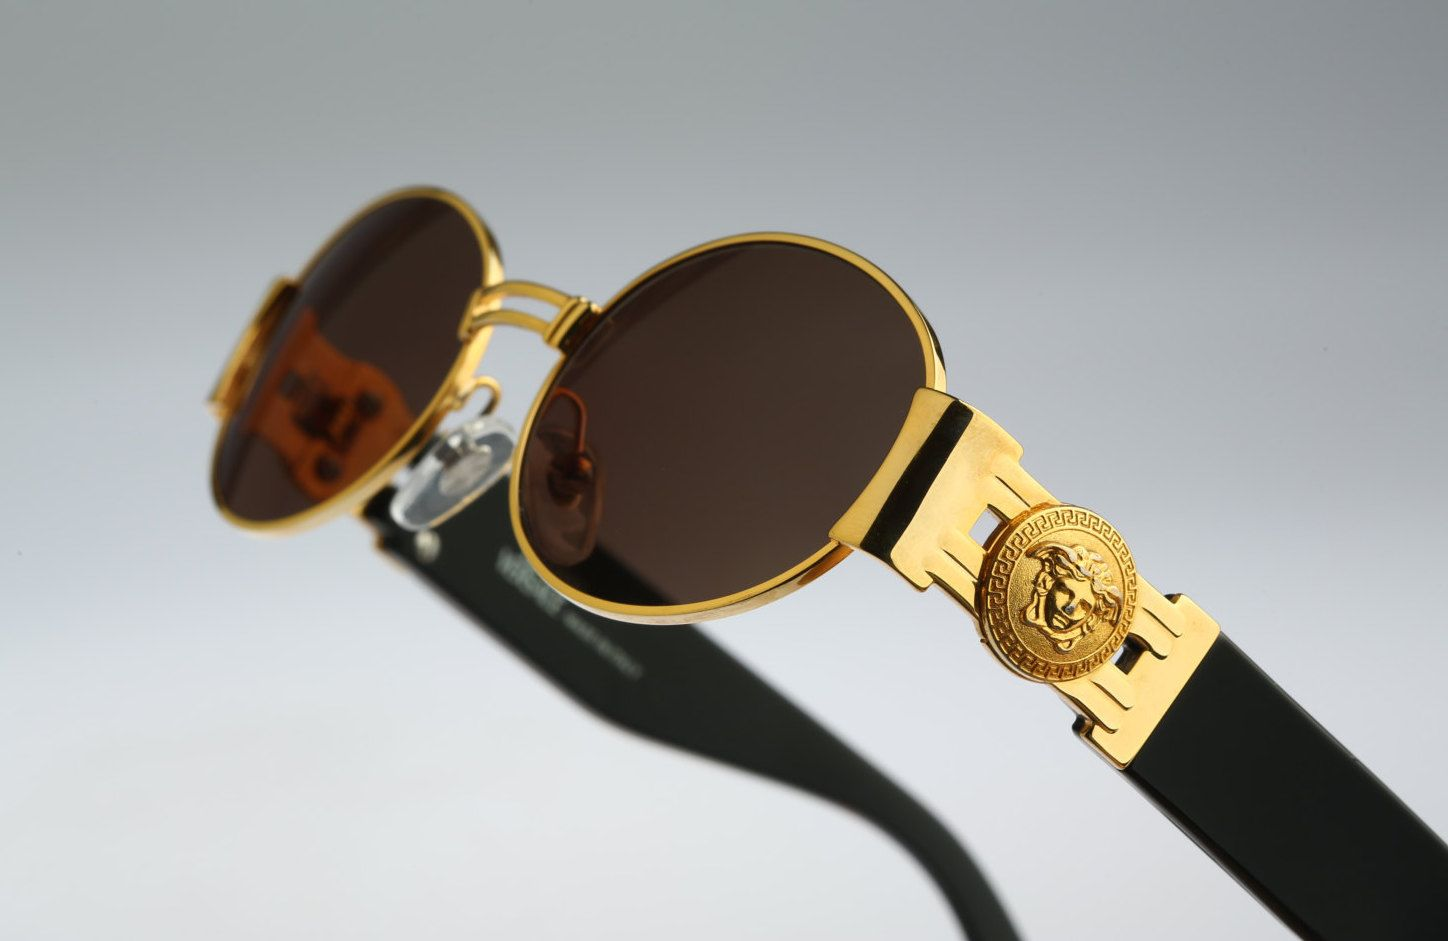 Gianni Versace Mod S71 / Vintage sunglasses / NOS / 90s and all time ...